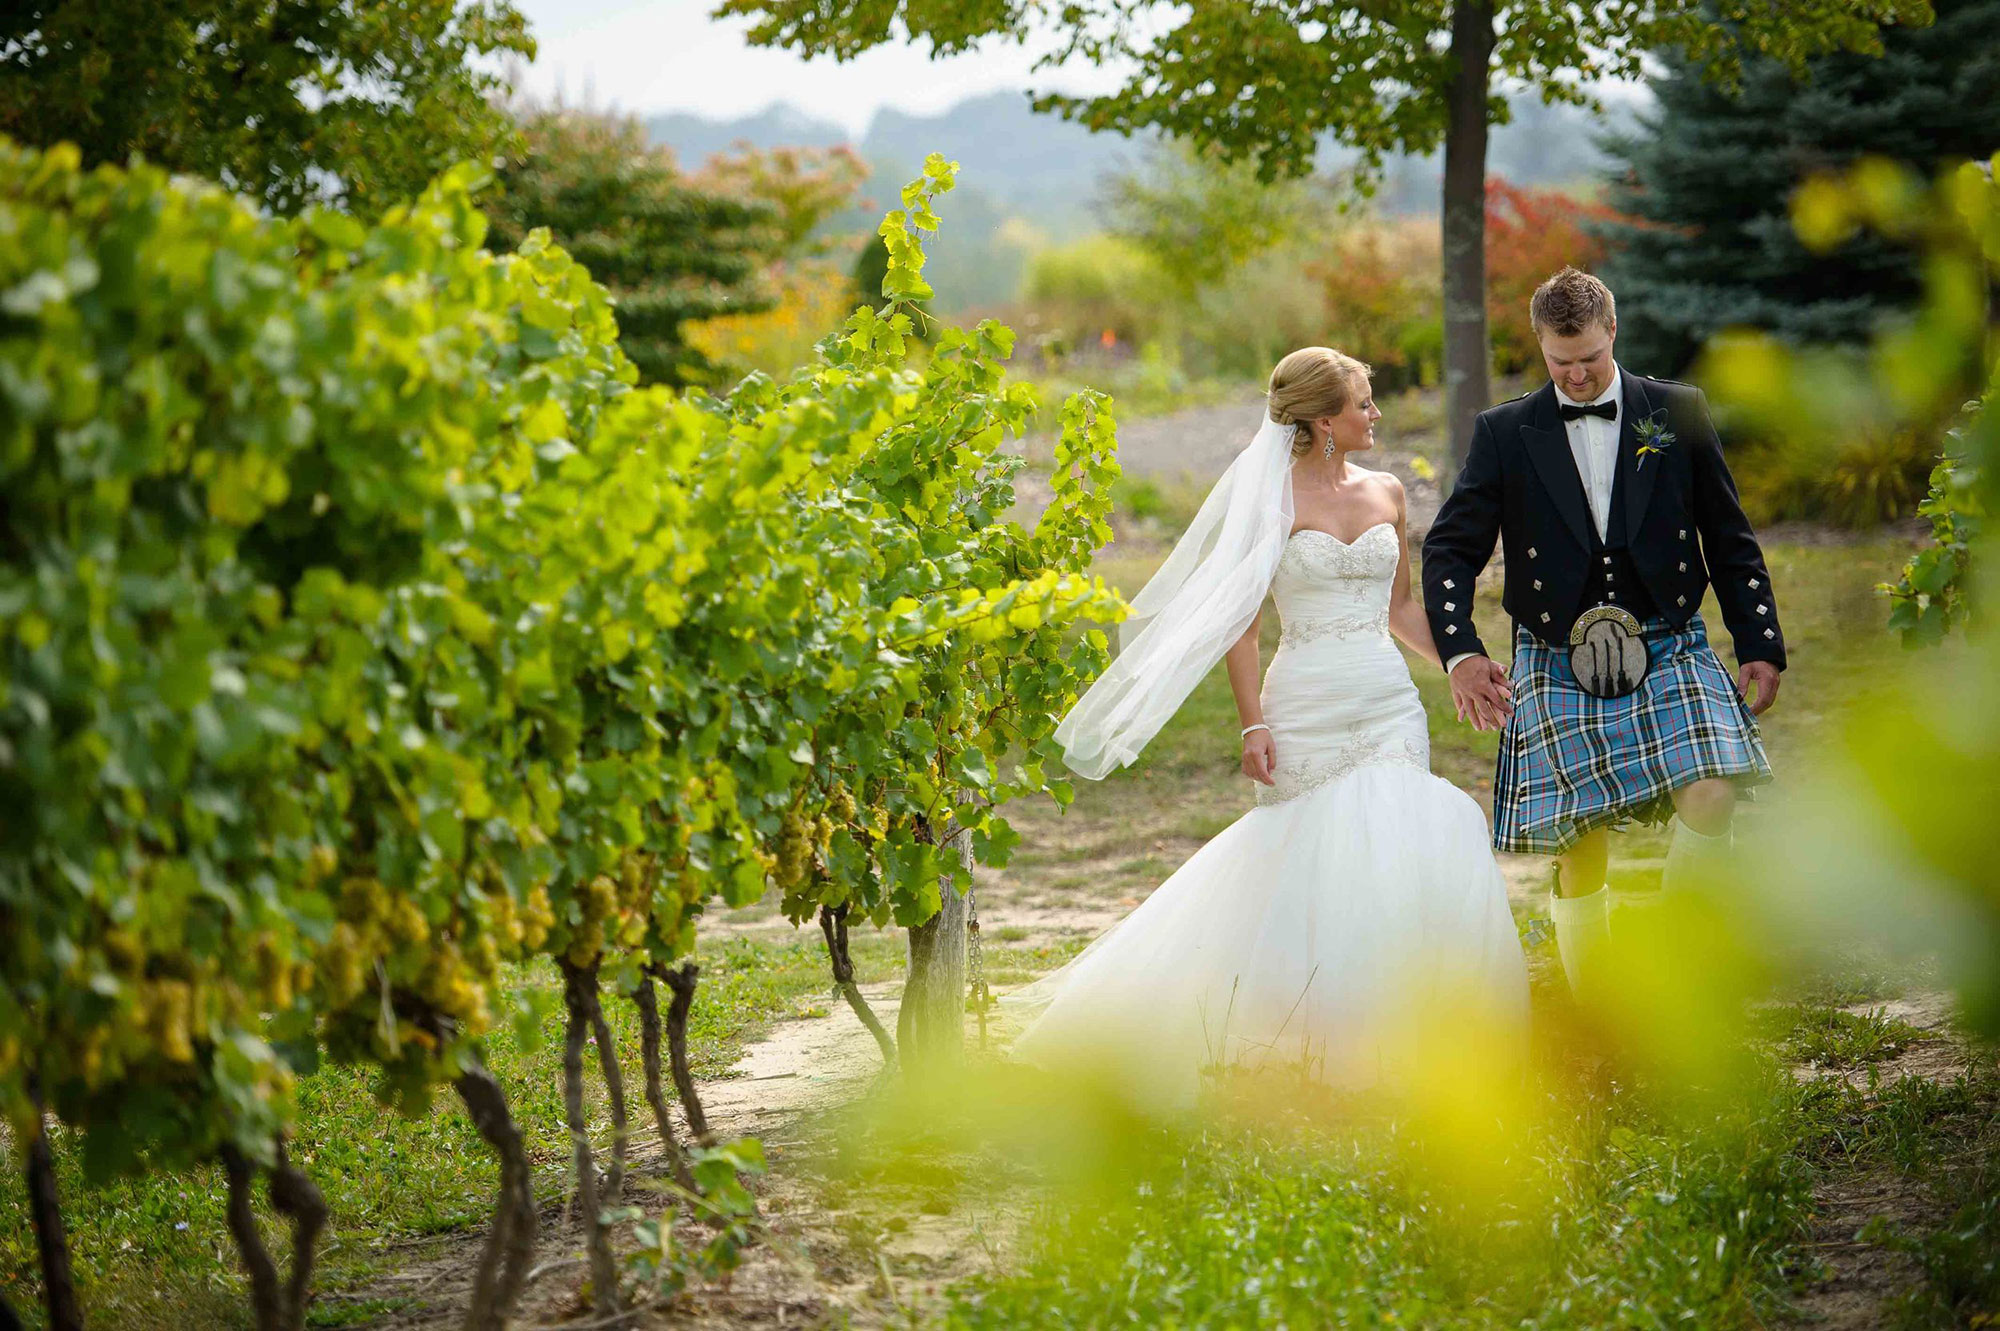 Rockway-Vineyards-Vineyard-Bride-Photo-By-Brian-Caporicci-021.jpg